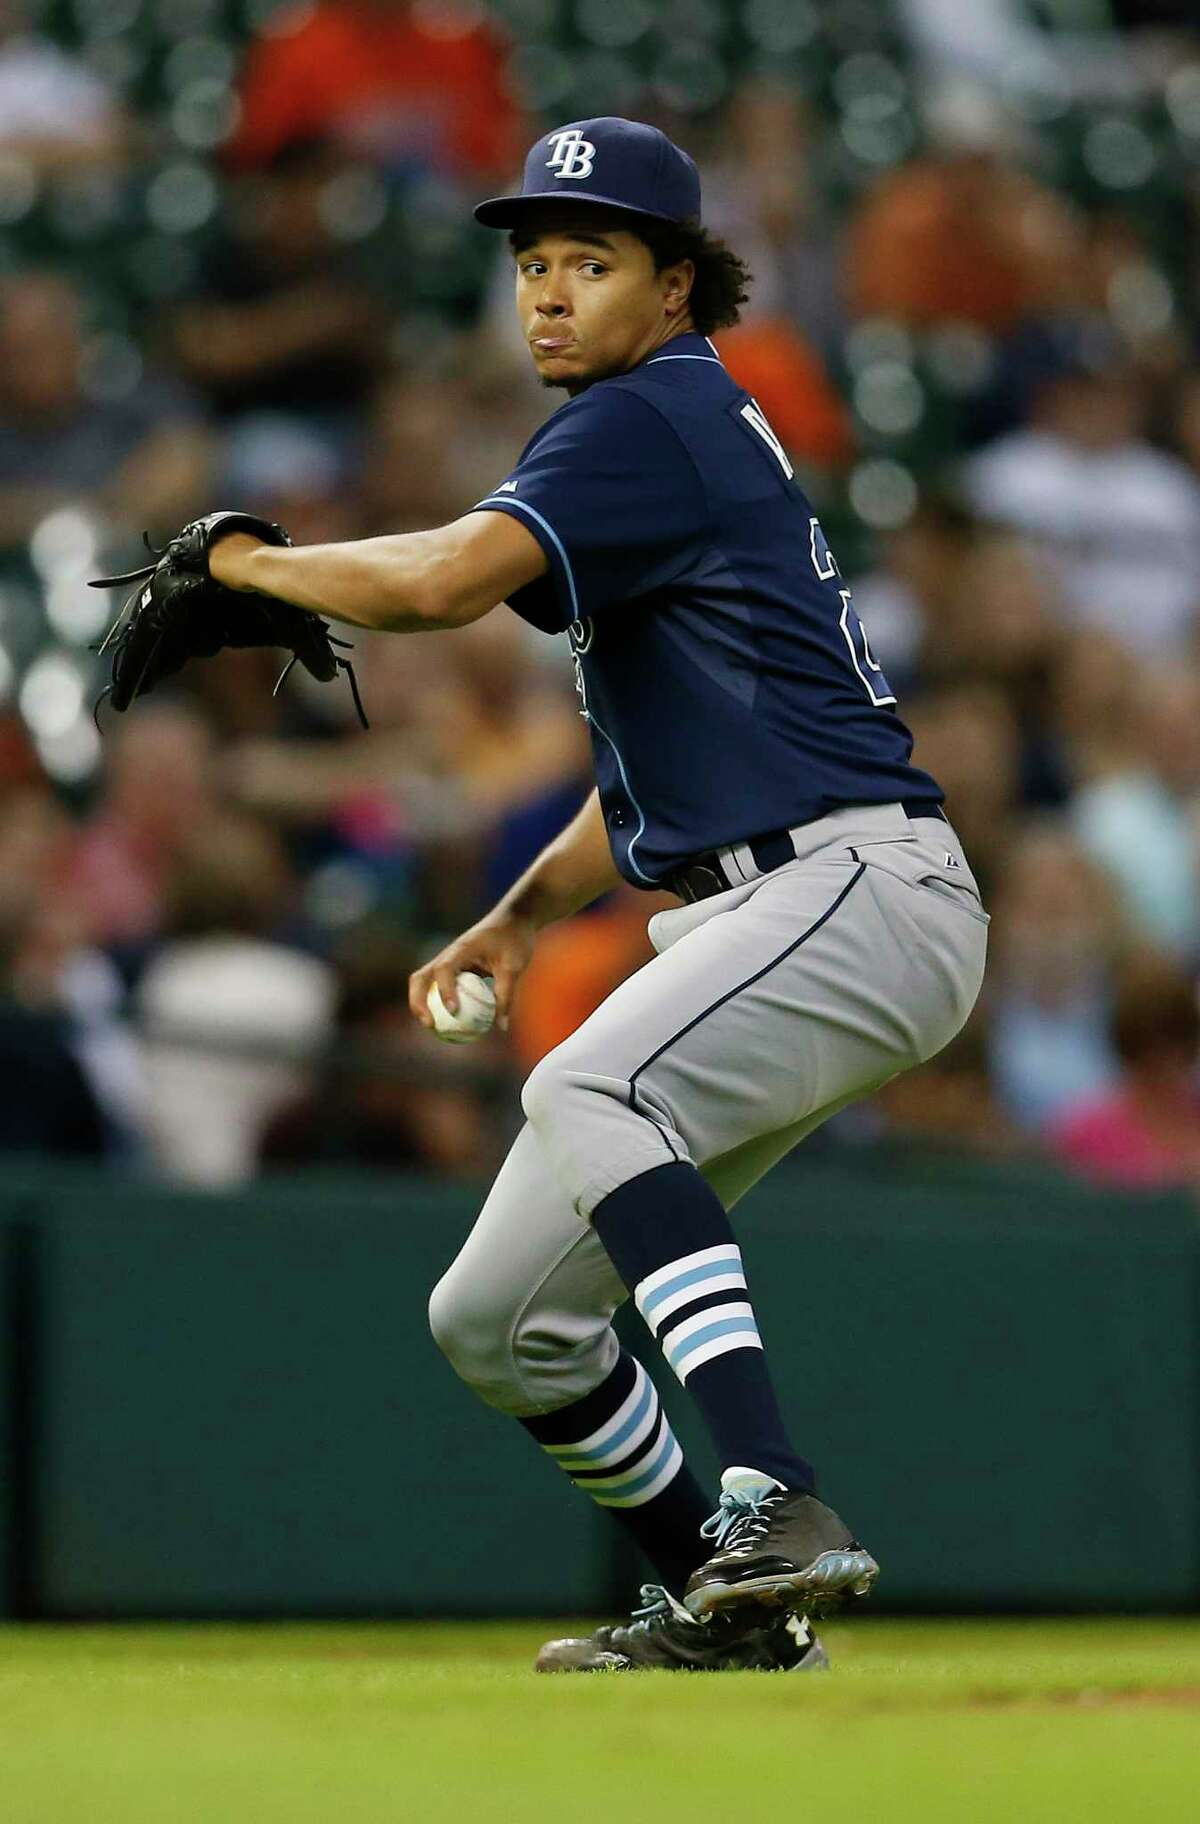 Rays ace Chris Archer is under contract for four seasons beyond 2017 and likely would require a hefty load of prospects for Tampa Bay to part with him.